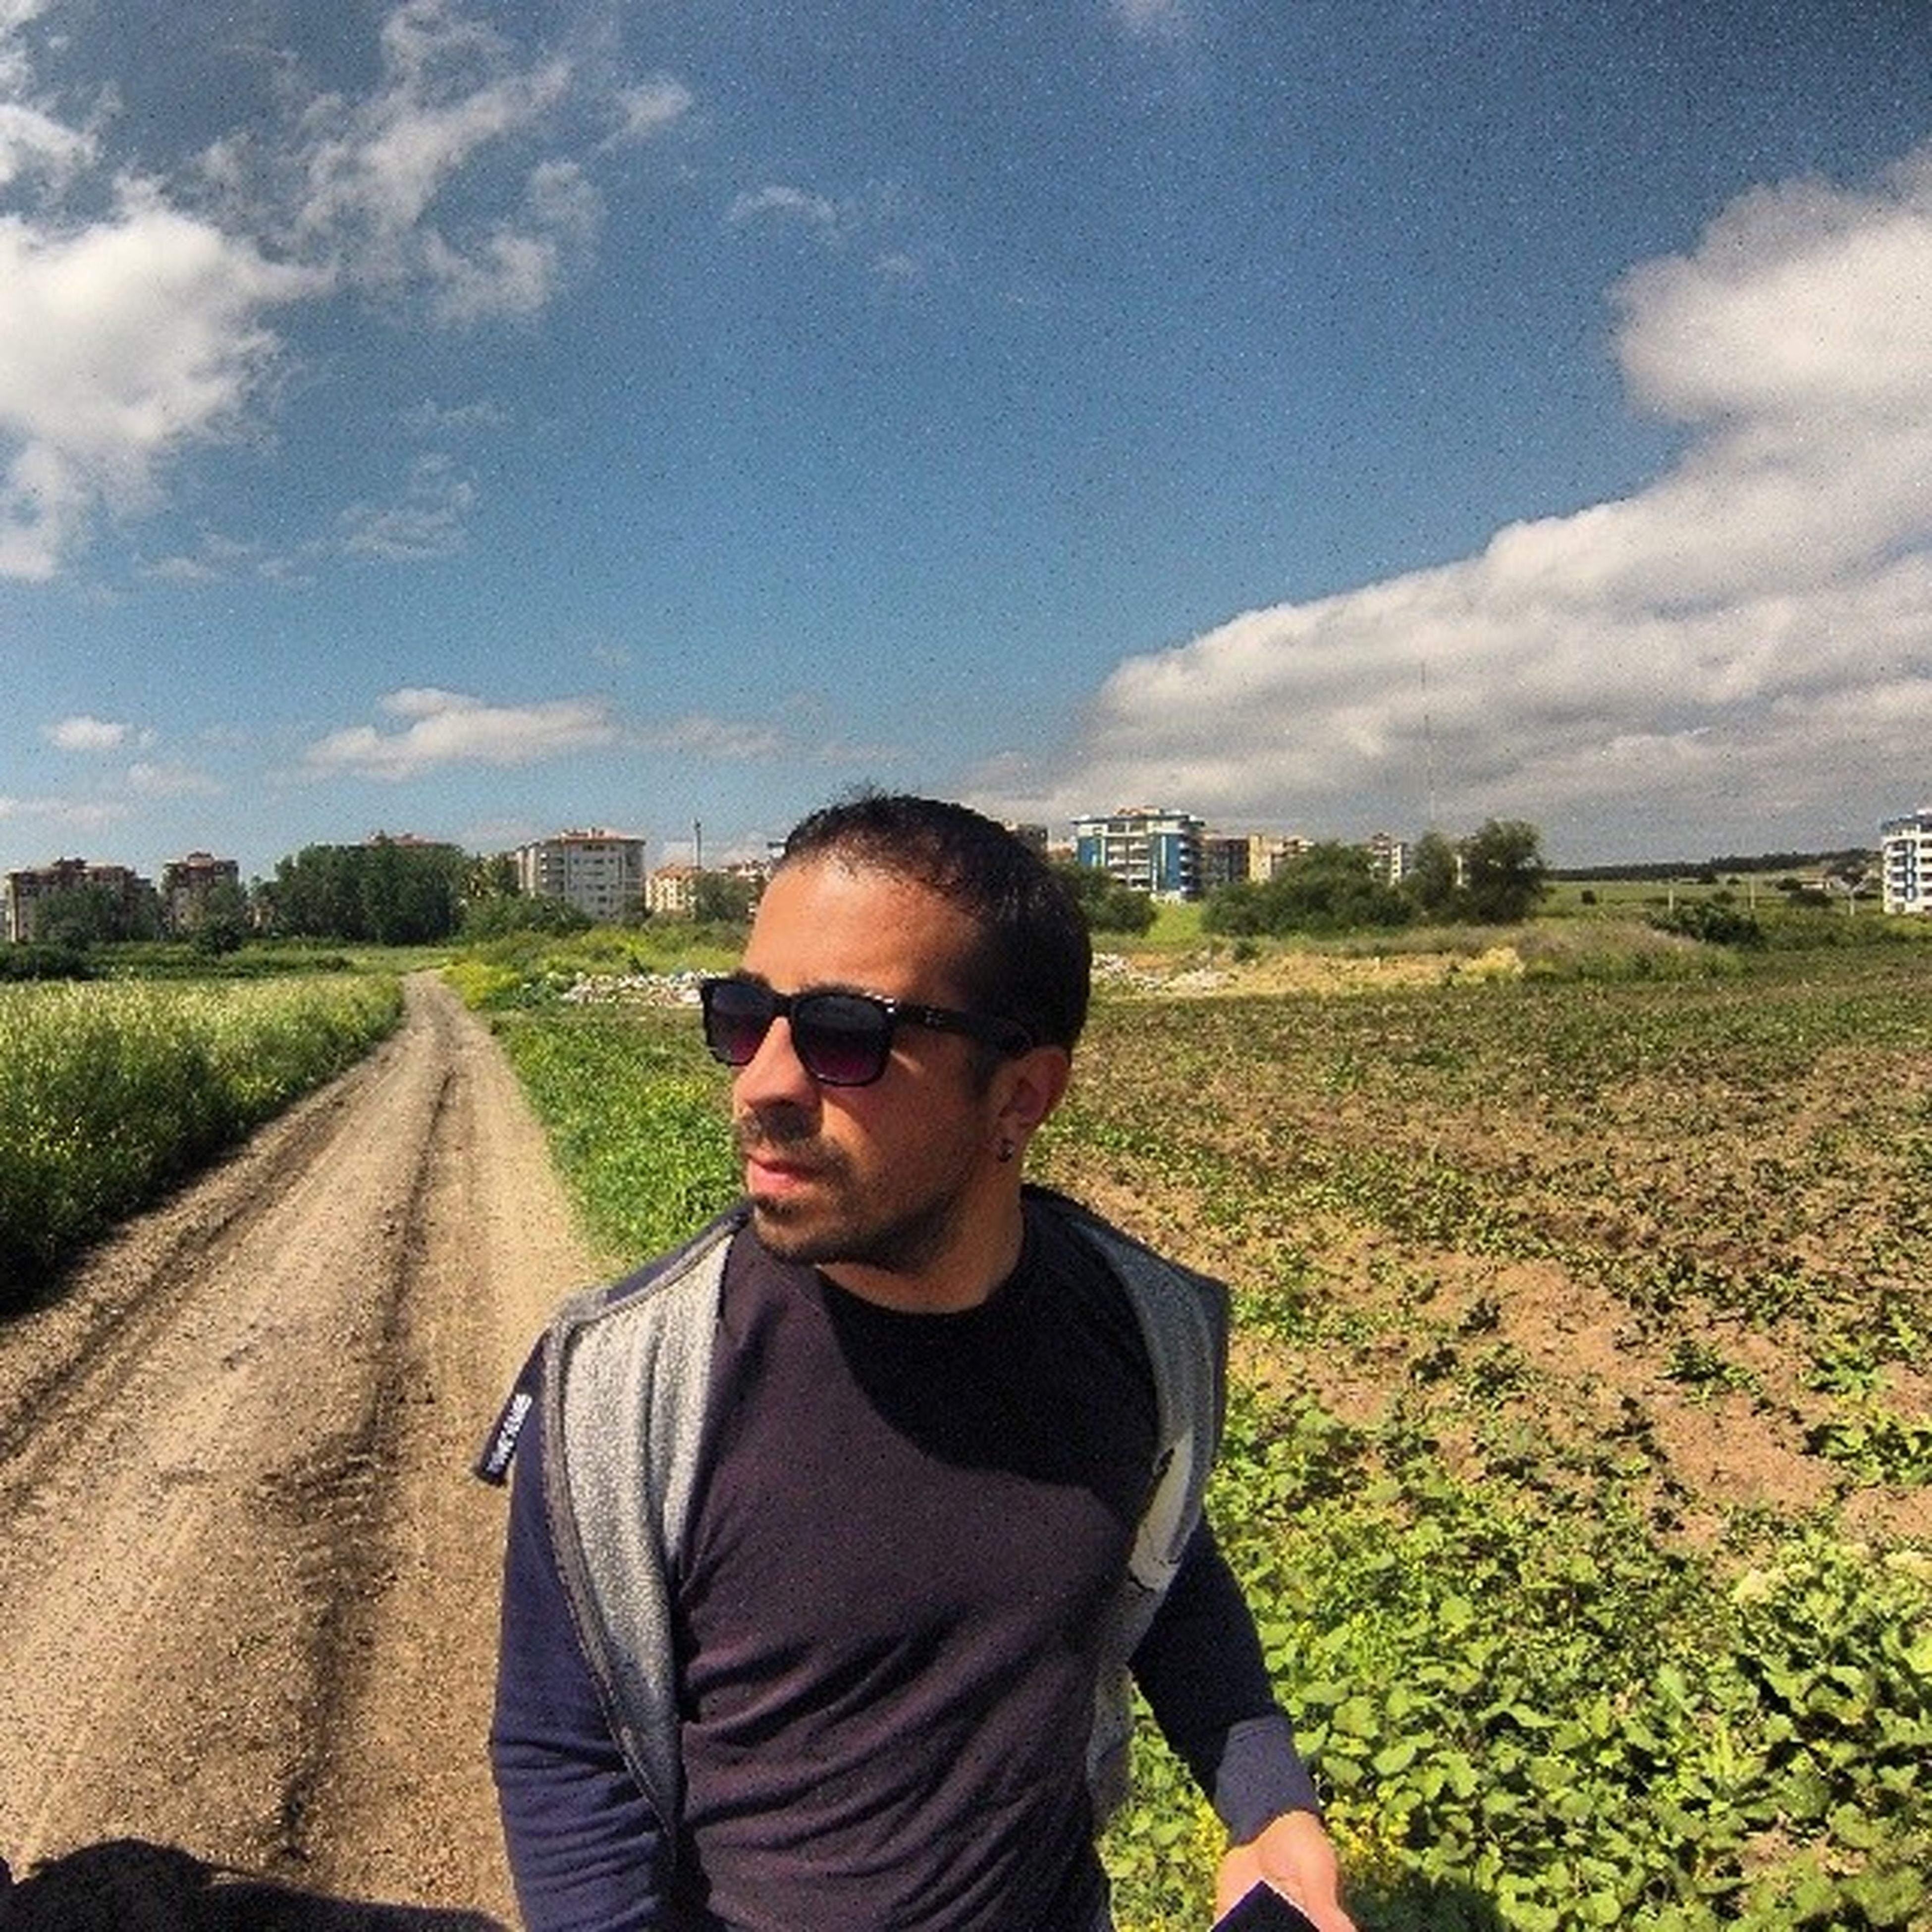 lifestyles, sky, person, leisure activity, casual clothing, young adult, looking at camera, portrait, field, young men, smiling, cloud - sky, sunglasses, front view, landscape, headshot, standing, head and shoulders